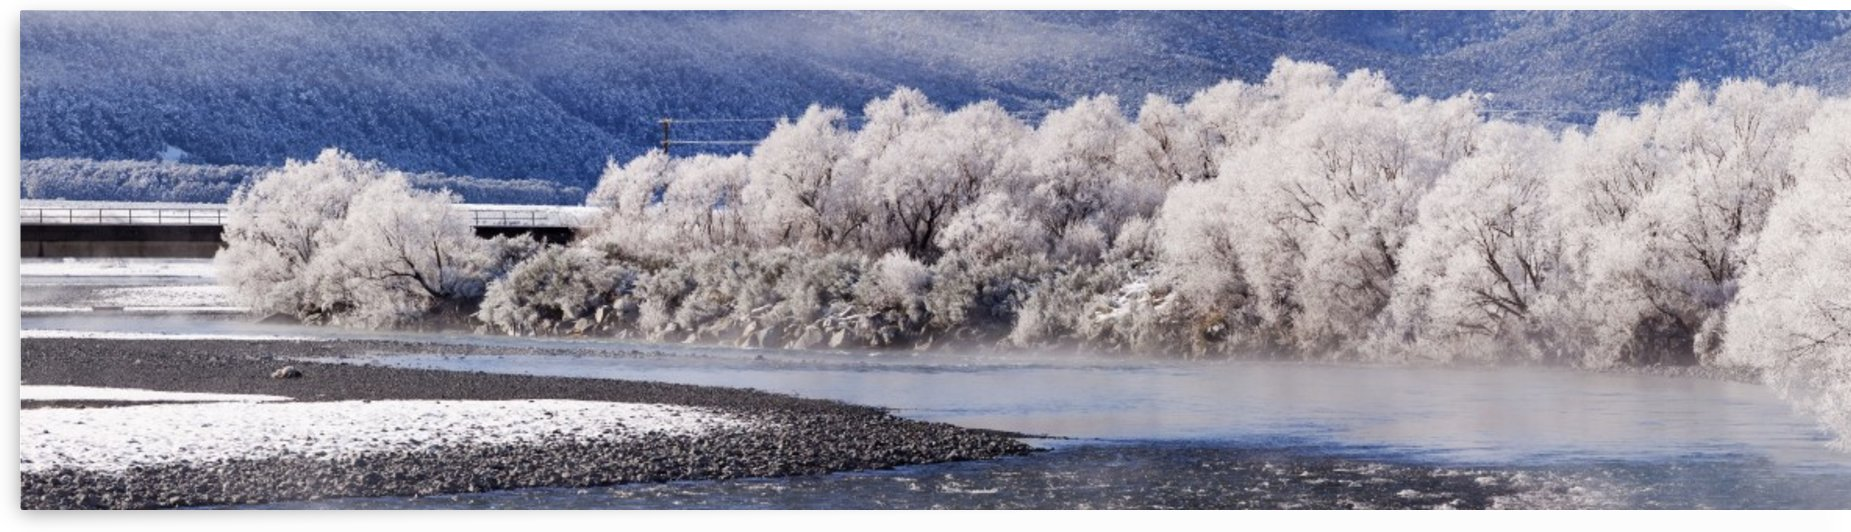 Hoar frost on trees by a river; Arthurs Pass, New Zealand by PacificStock